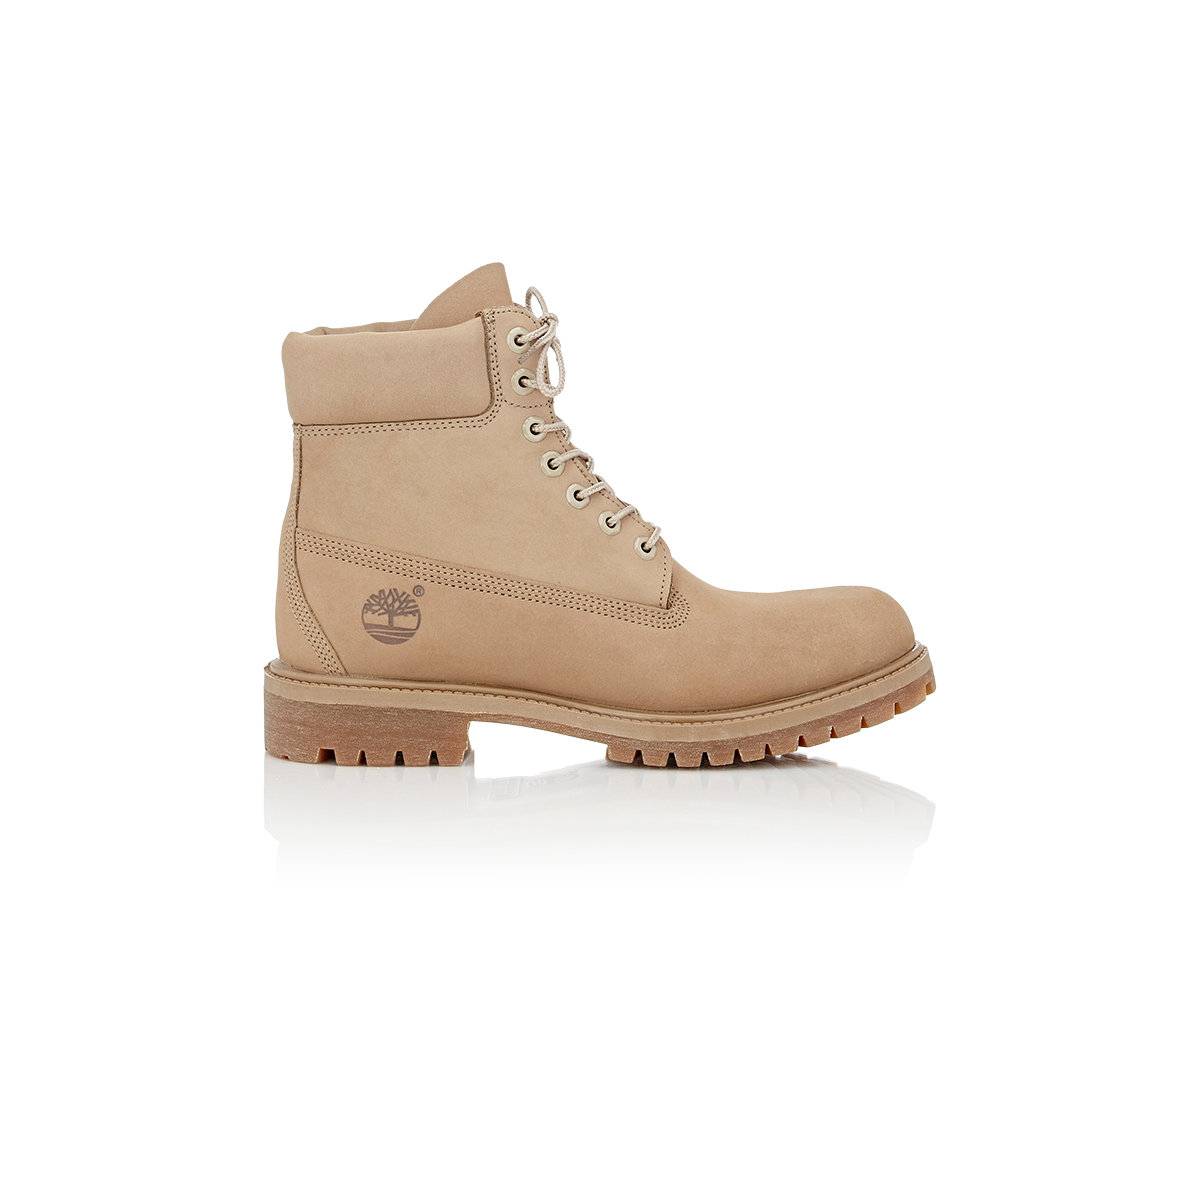 Timberland Dress Shoes | Timberland Boots for Women with Heels | Colored Timberlands